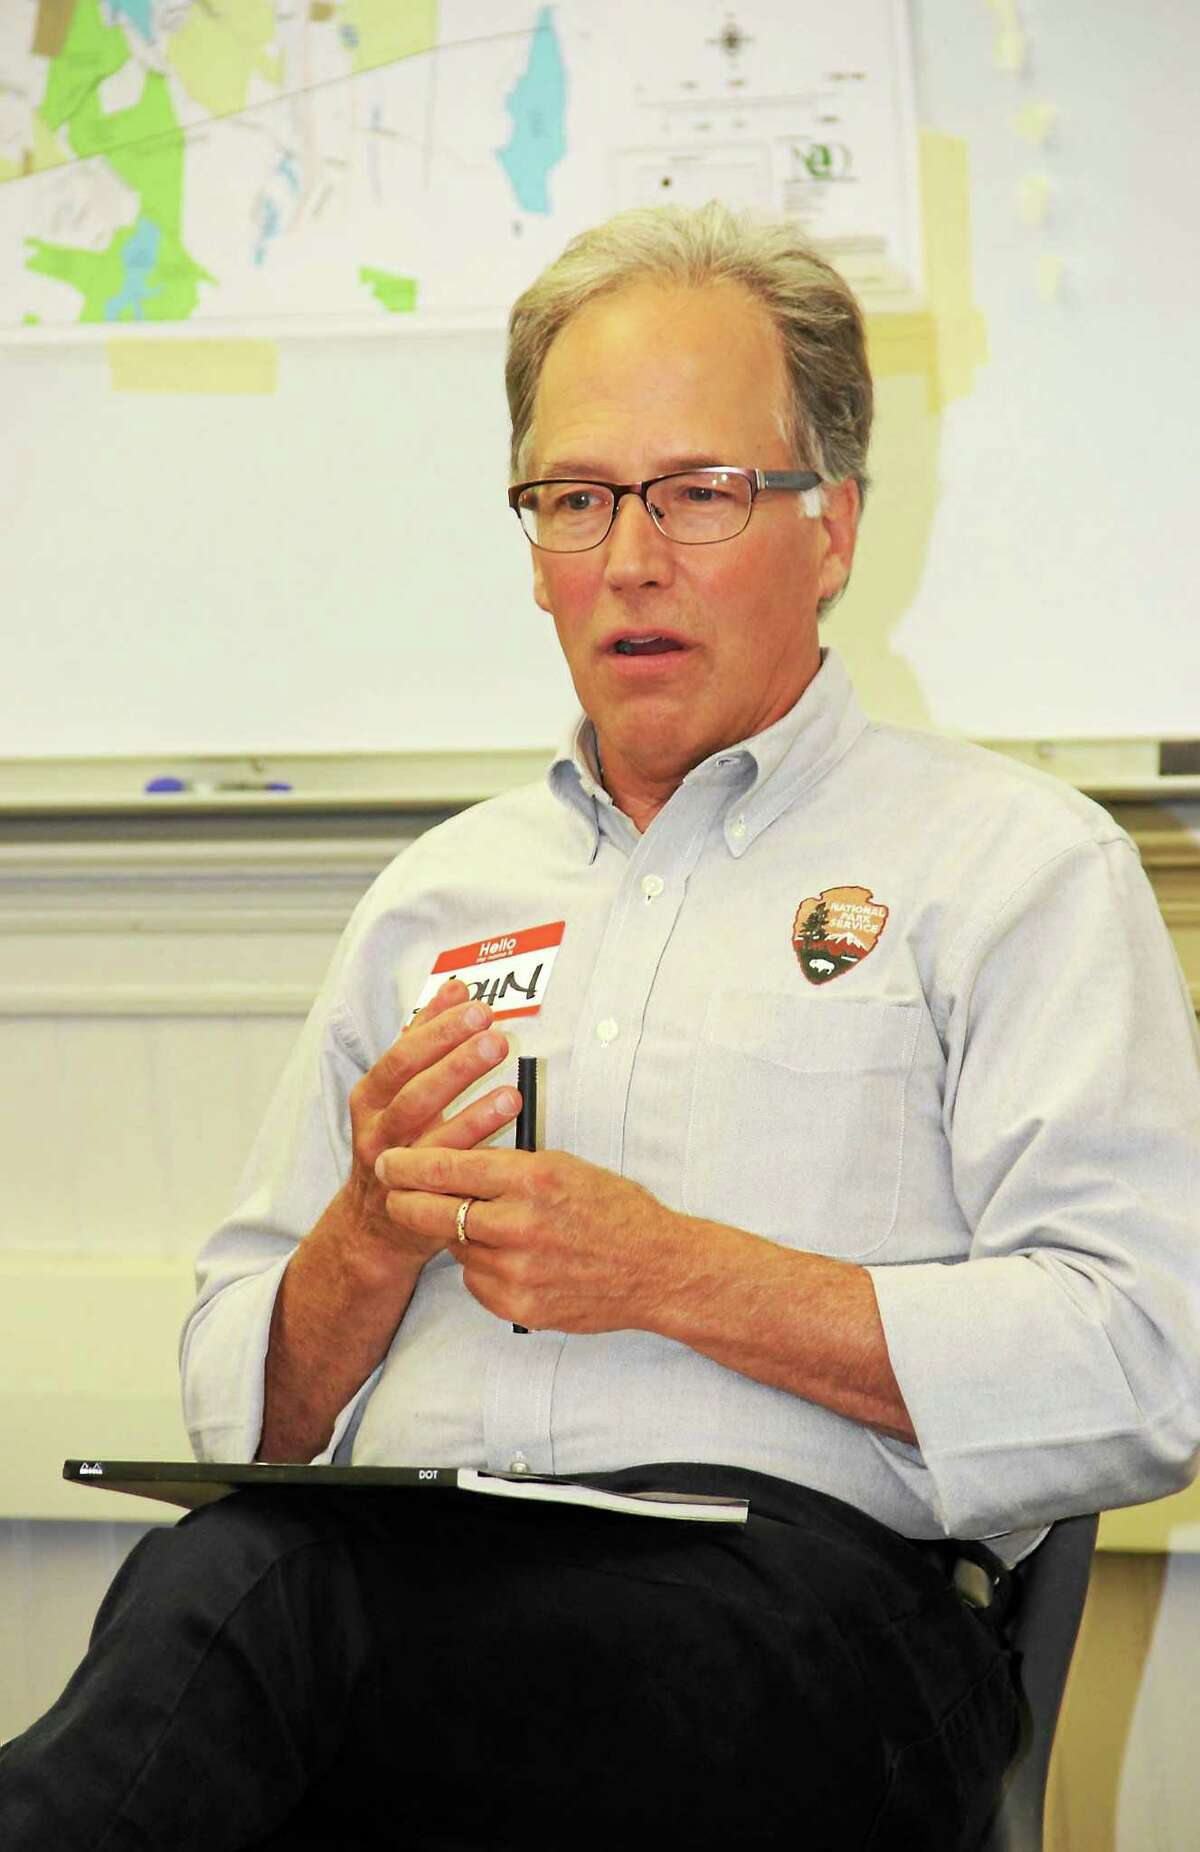 John Monroe, a National Parks Service professional who specializes in the organization's rivers and trails programs, offers assistance to Winsted Trails during a meeting Wednesday night at Northwestern Connecticut Community College.